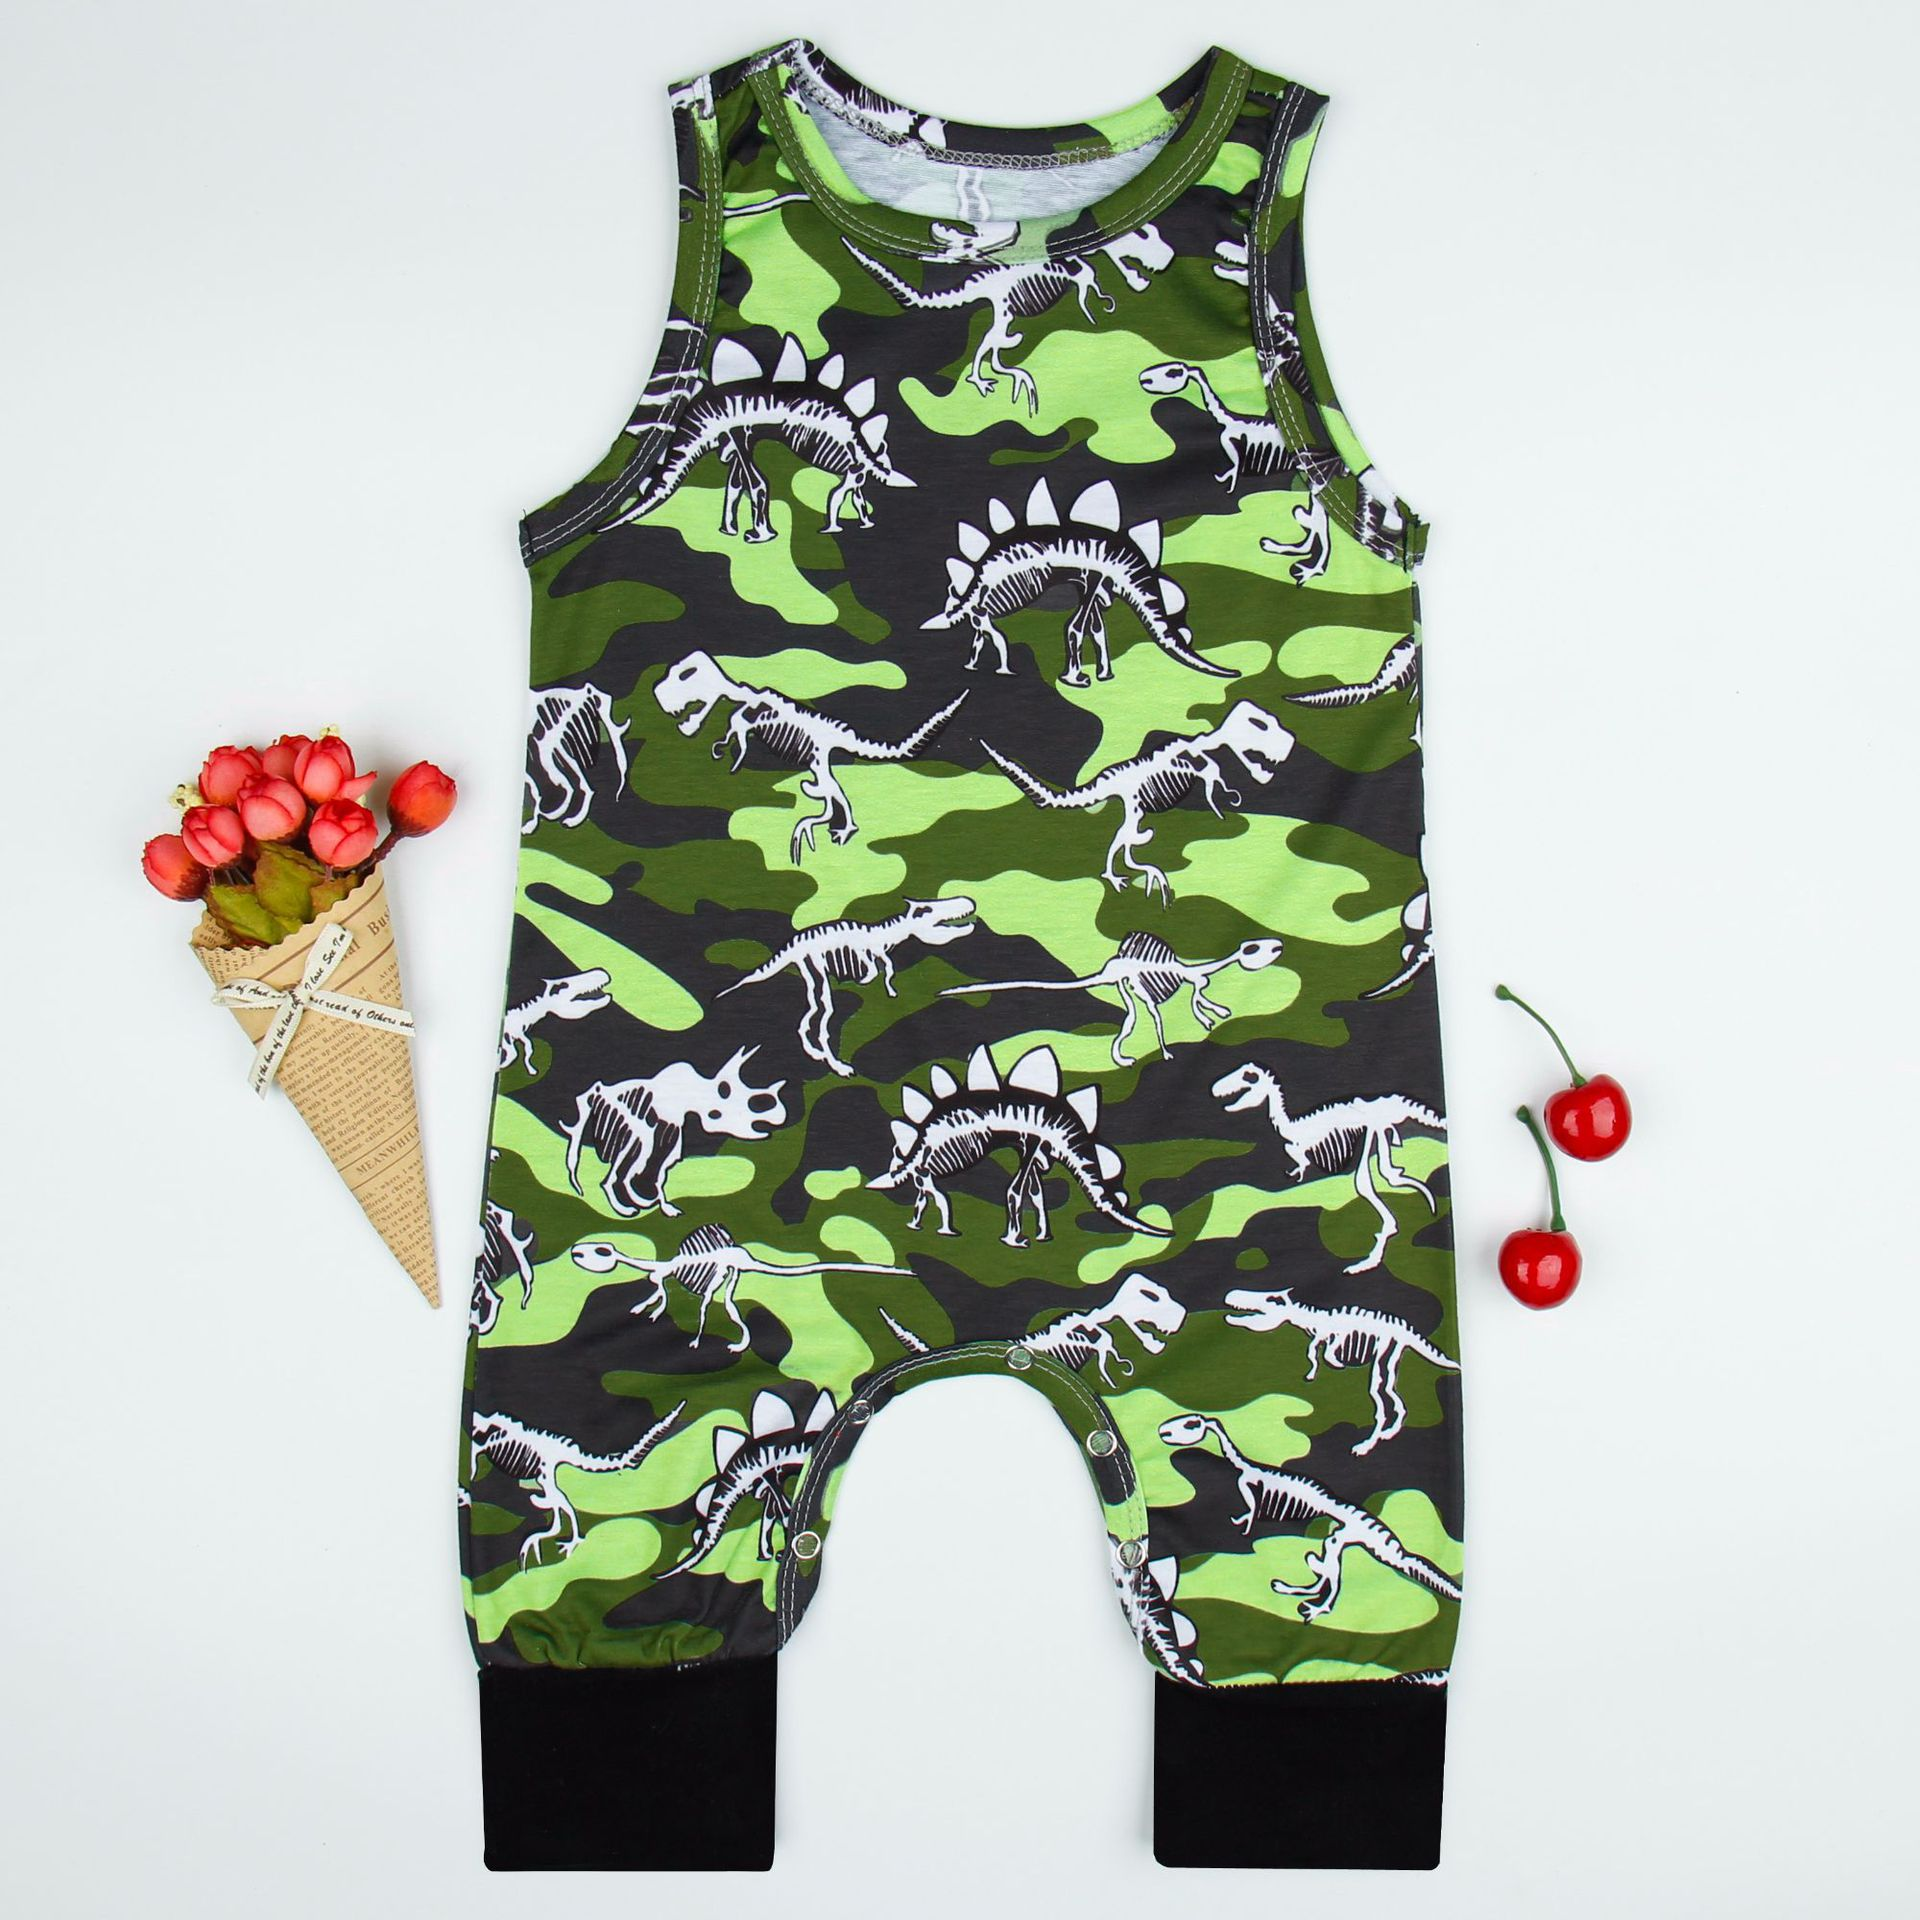 Baby Romper Promotion Special Offer Cotton Unisex Character O-neck Baby Girl 2018 Camouflage Dinosaur With Printed Jumper Suit